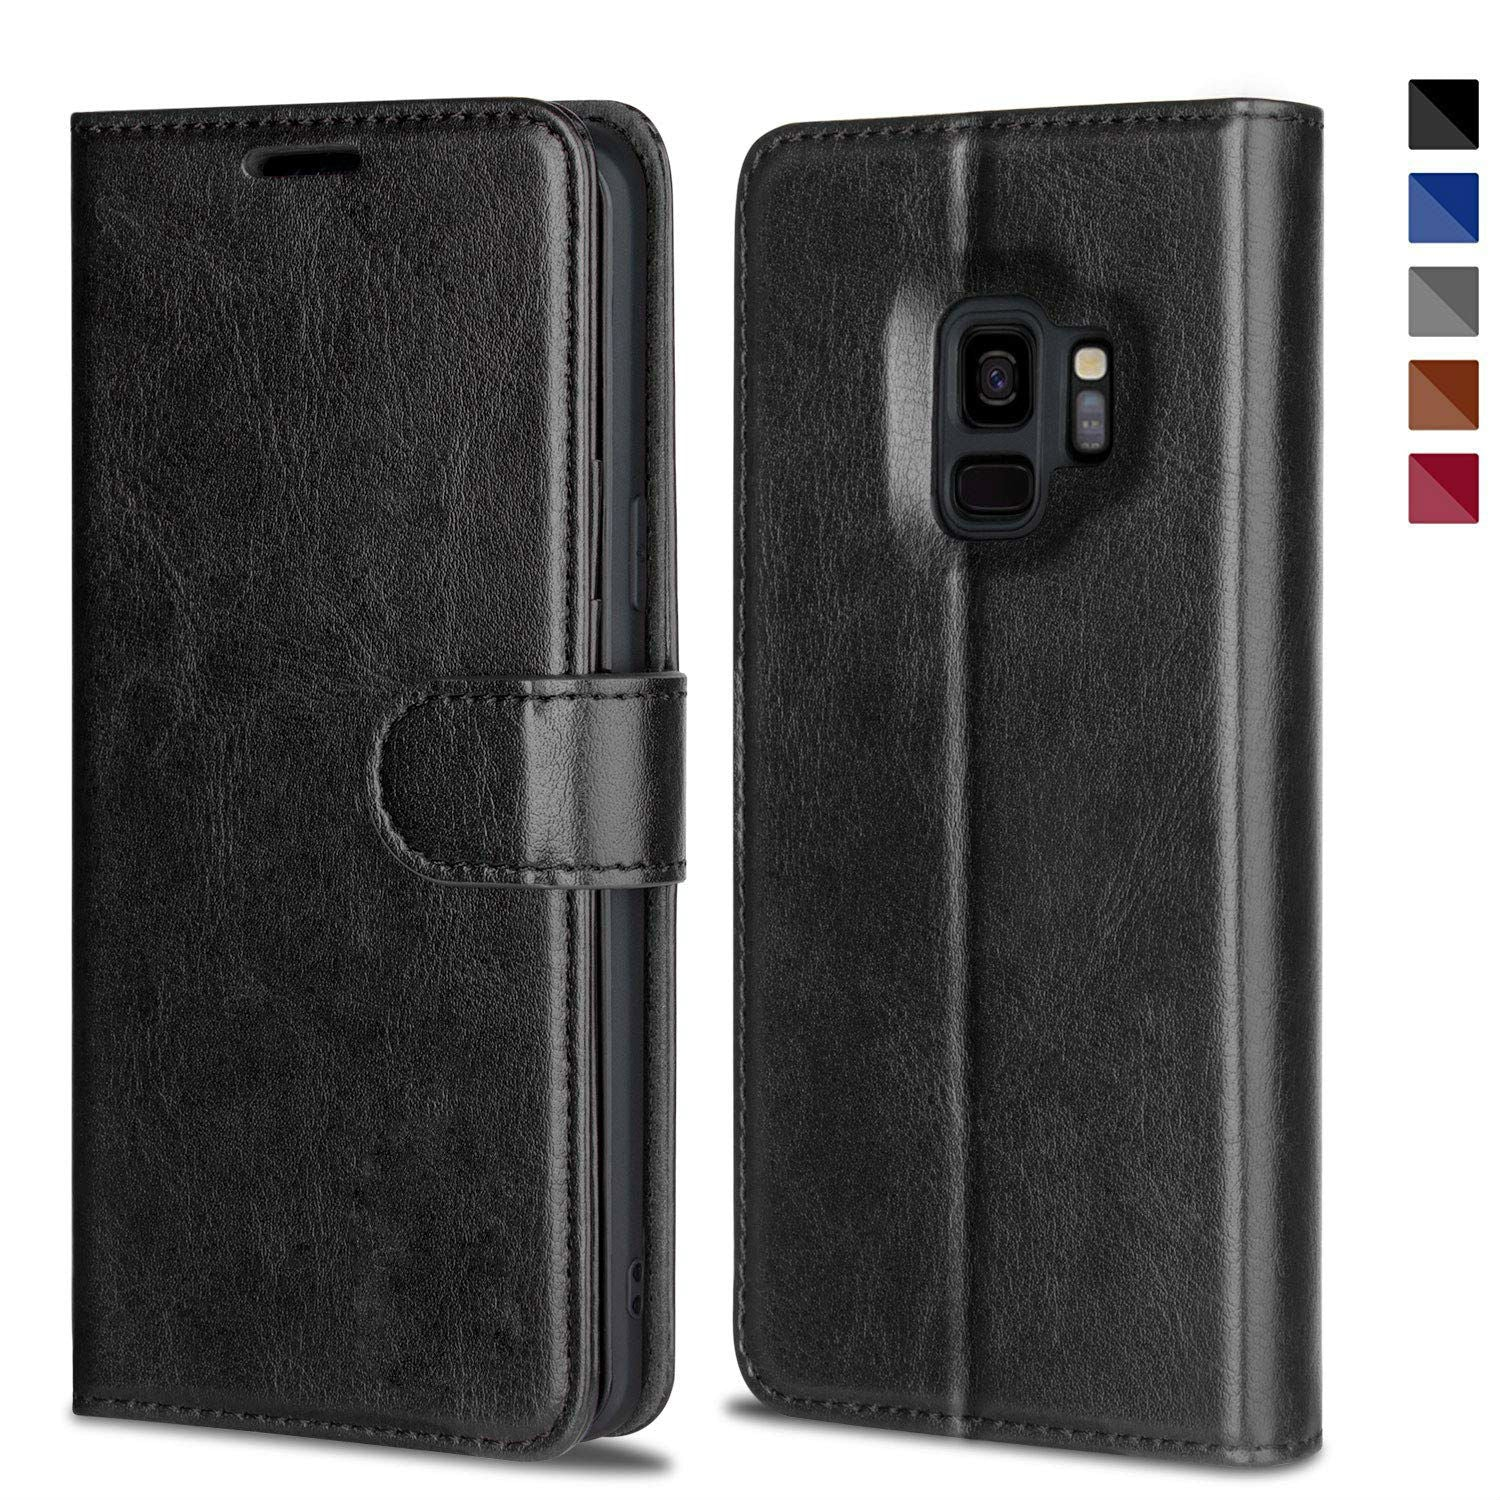 Leather Wallet Magnetic Flip Case with strap Samsung Galaxy S8 or S8 Plus